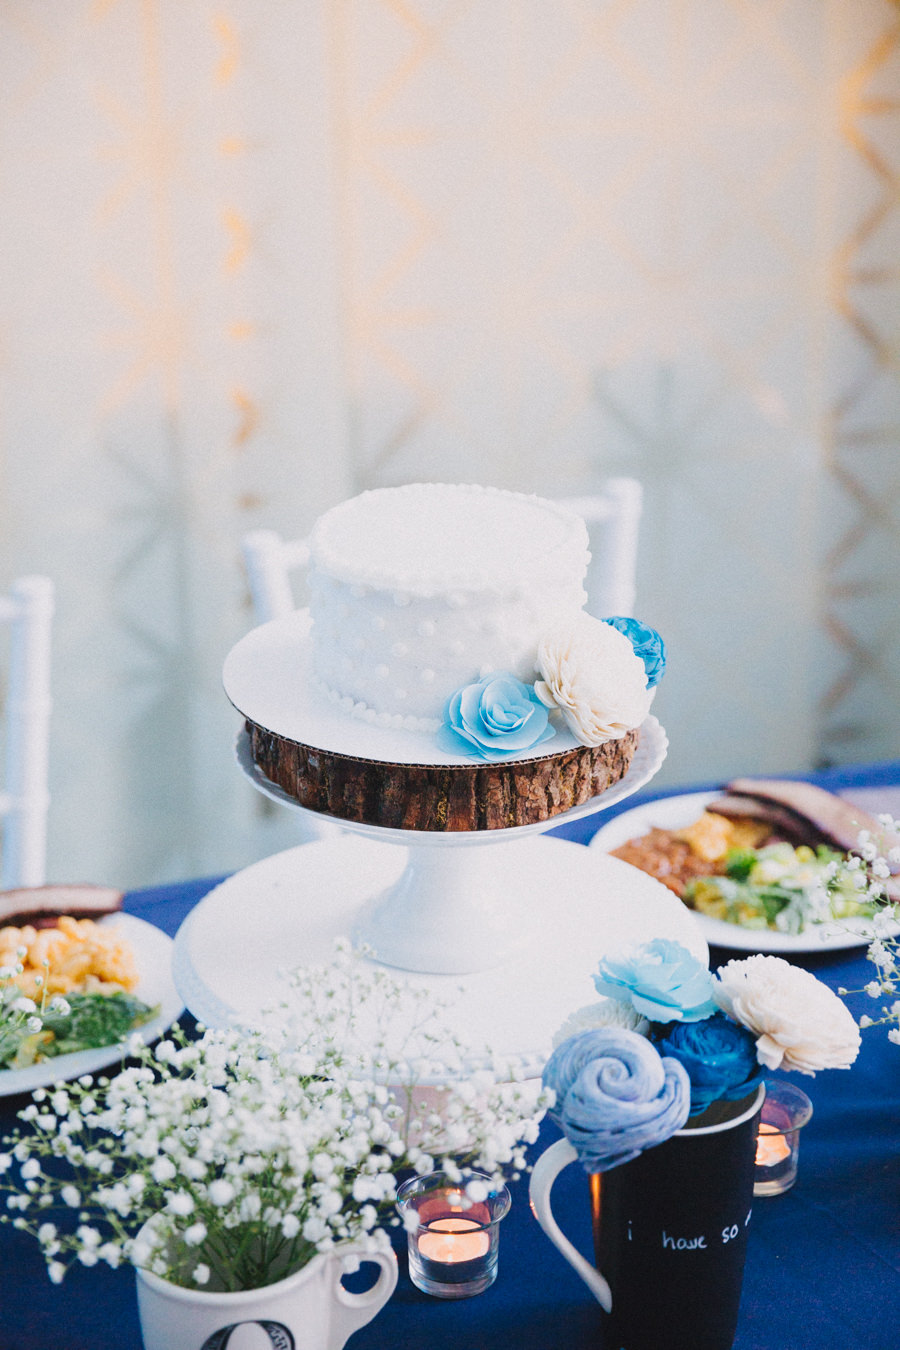 Bride and Groom Wedding Reception Blue and White Table Decor with Baby's Breath, Small Blue and White Flower Centerpiece, and Small Round White Wedding Cake on White Cake Stand